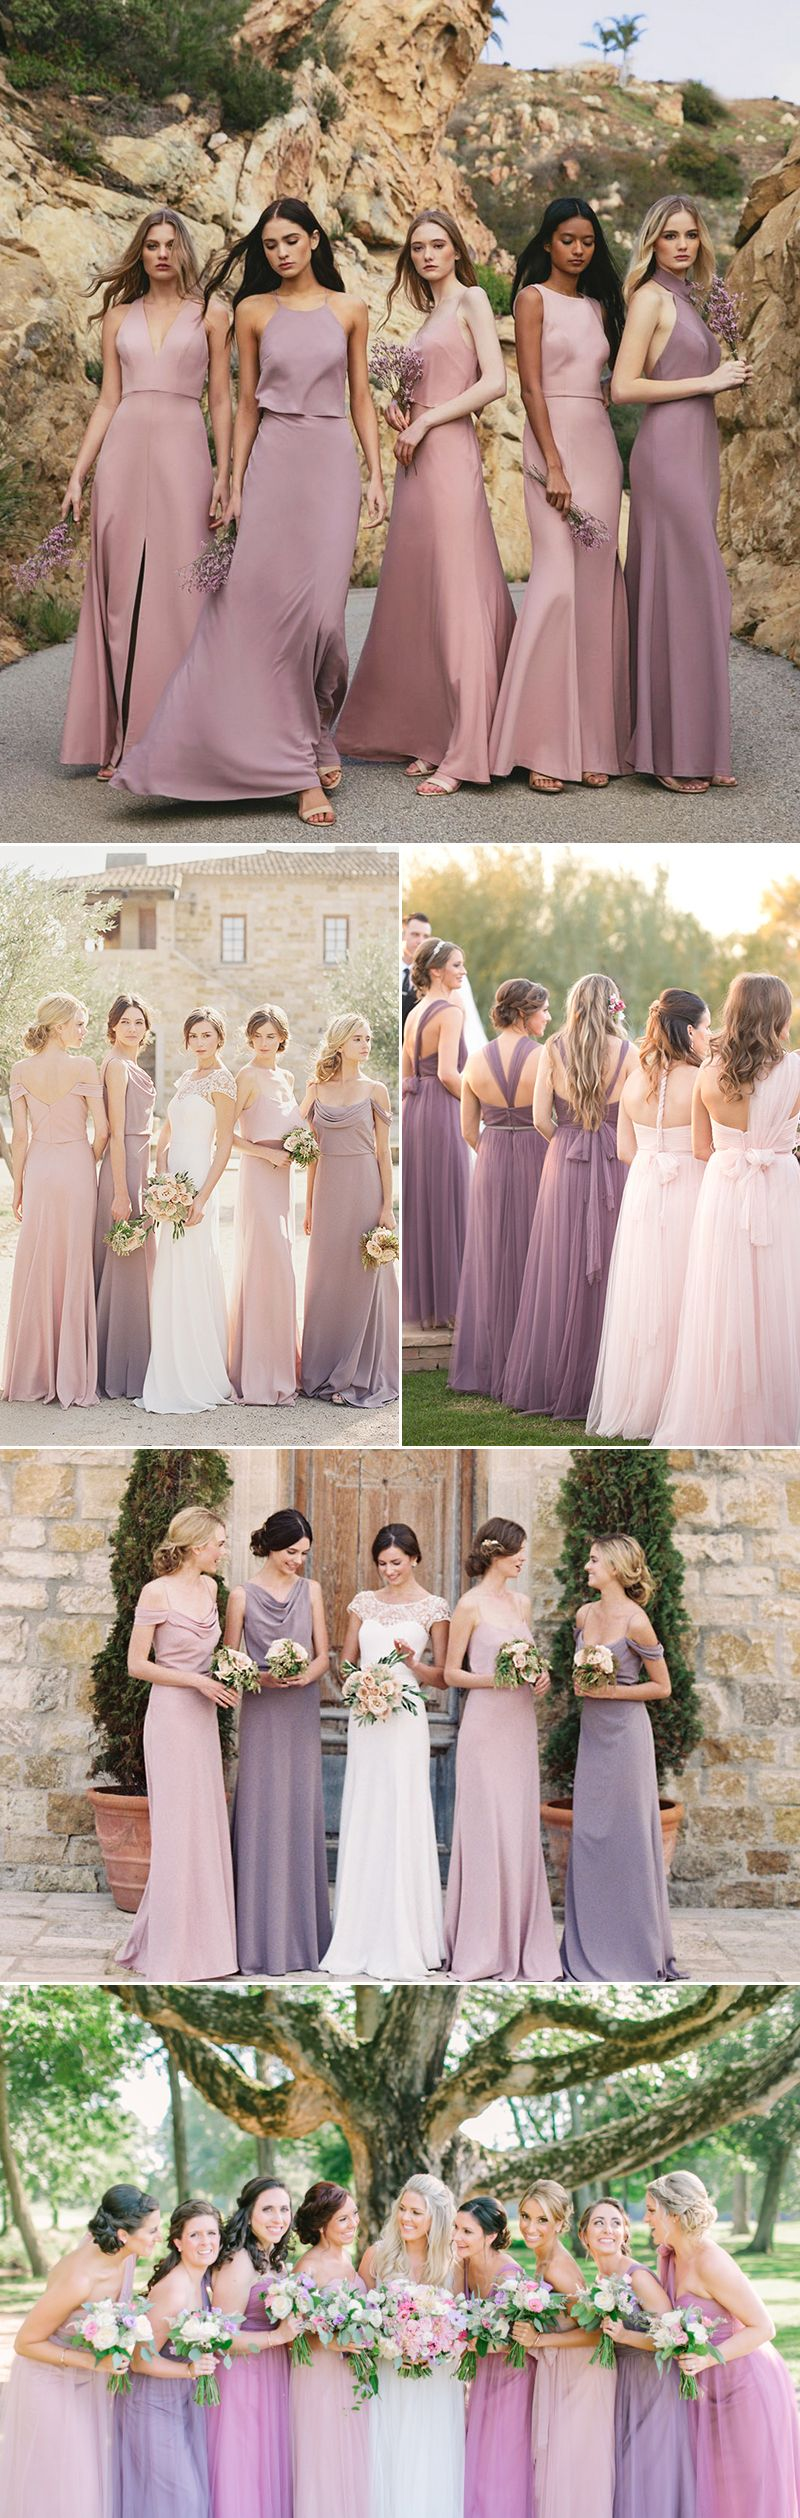 Top 20 Bridesmaid Dress Color Combinations for Spring and Summer ...